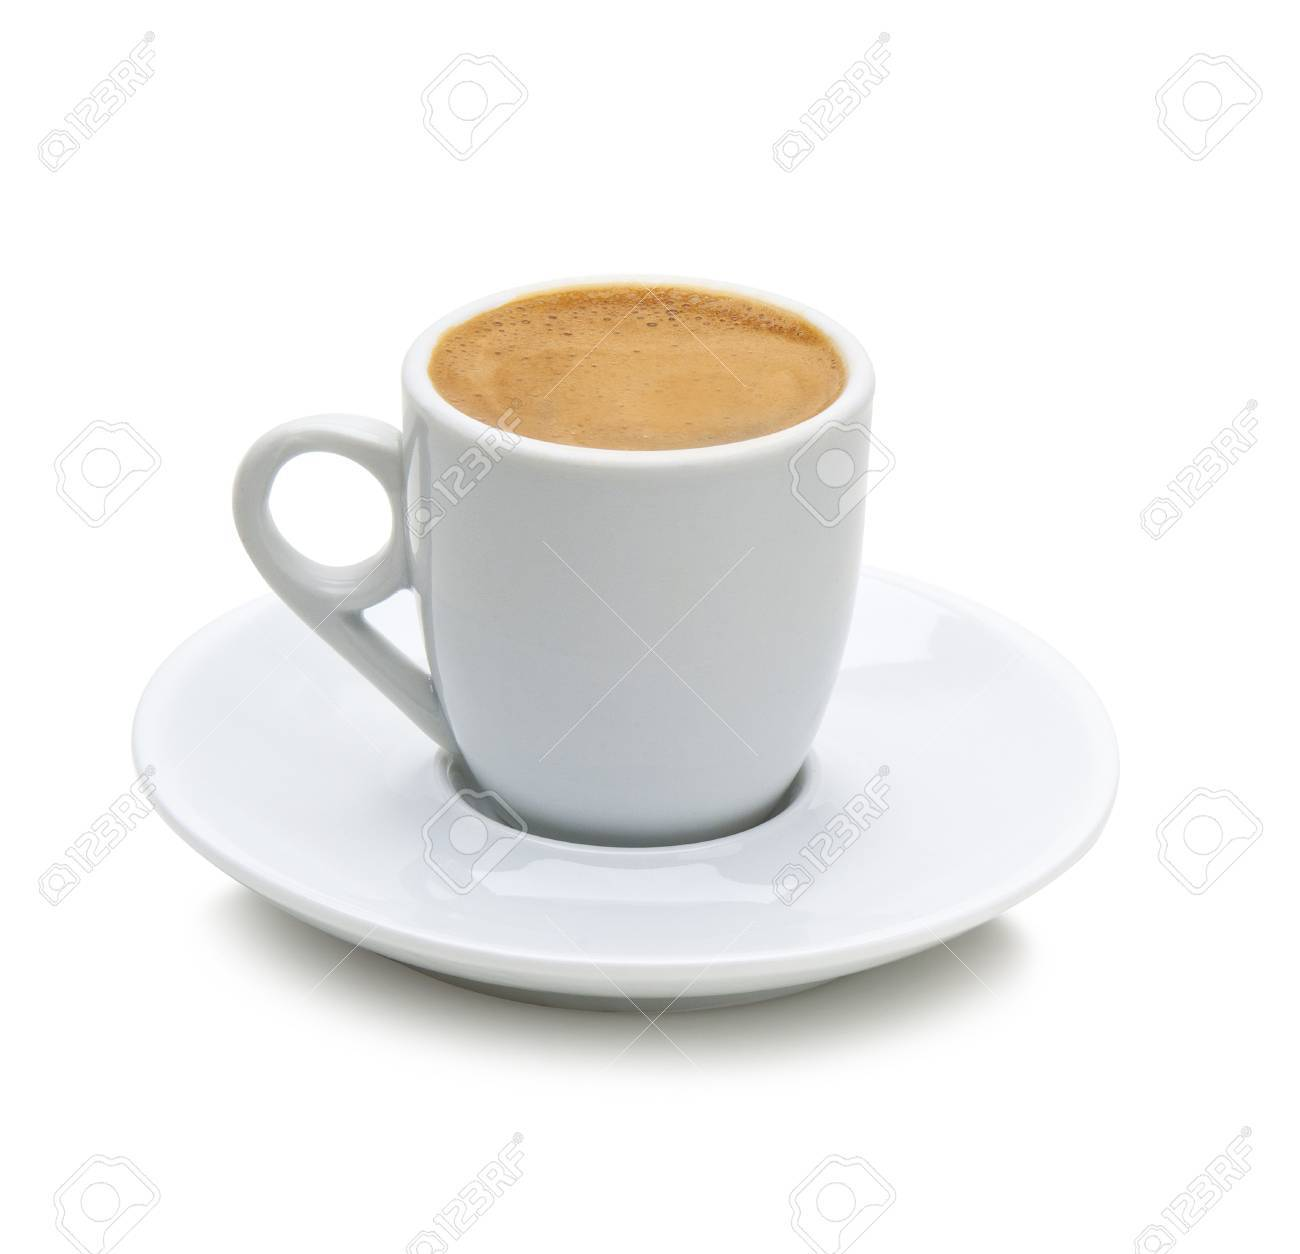 Greek Coffee In A White Cup Isolated On A White Background Path